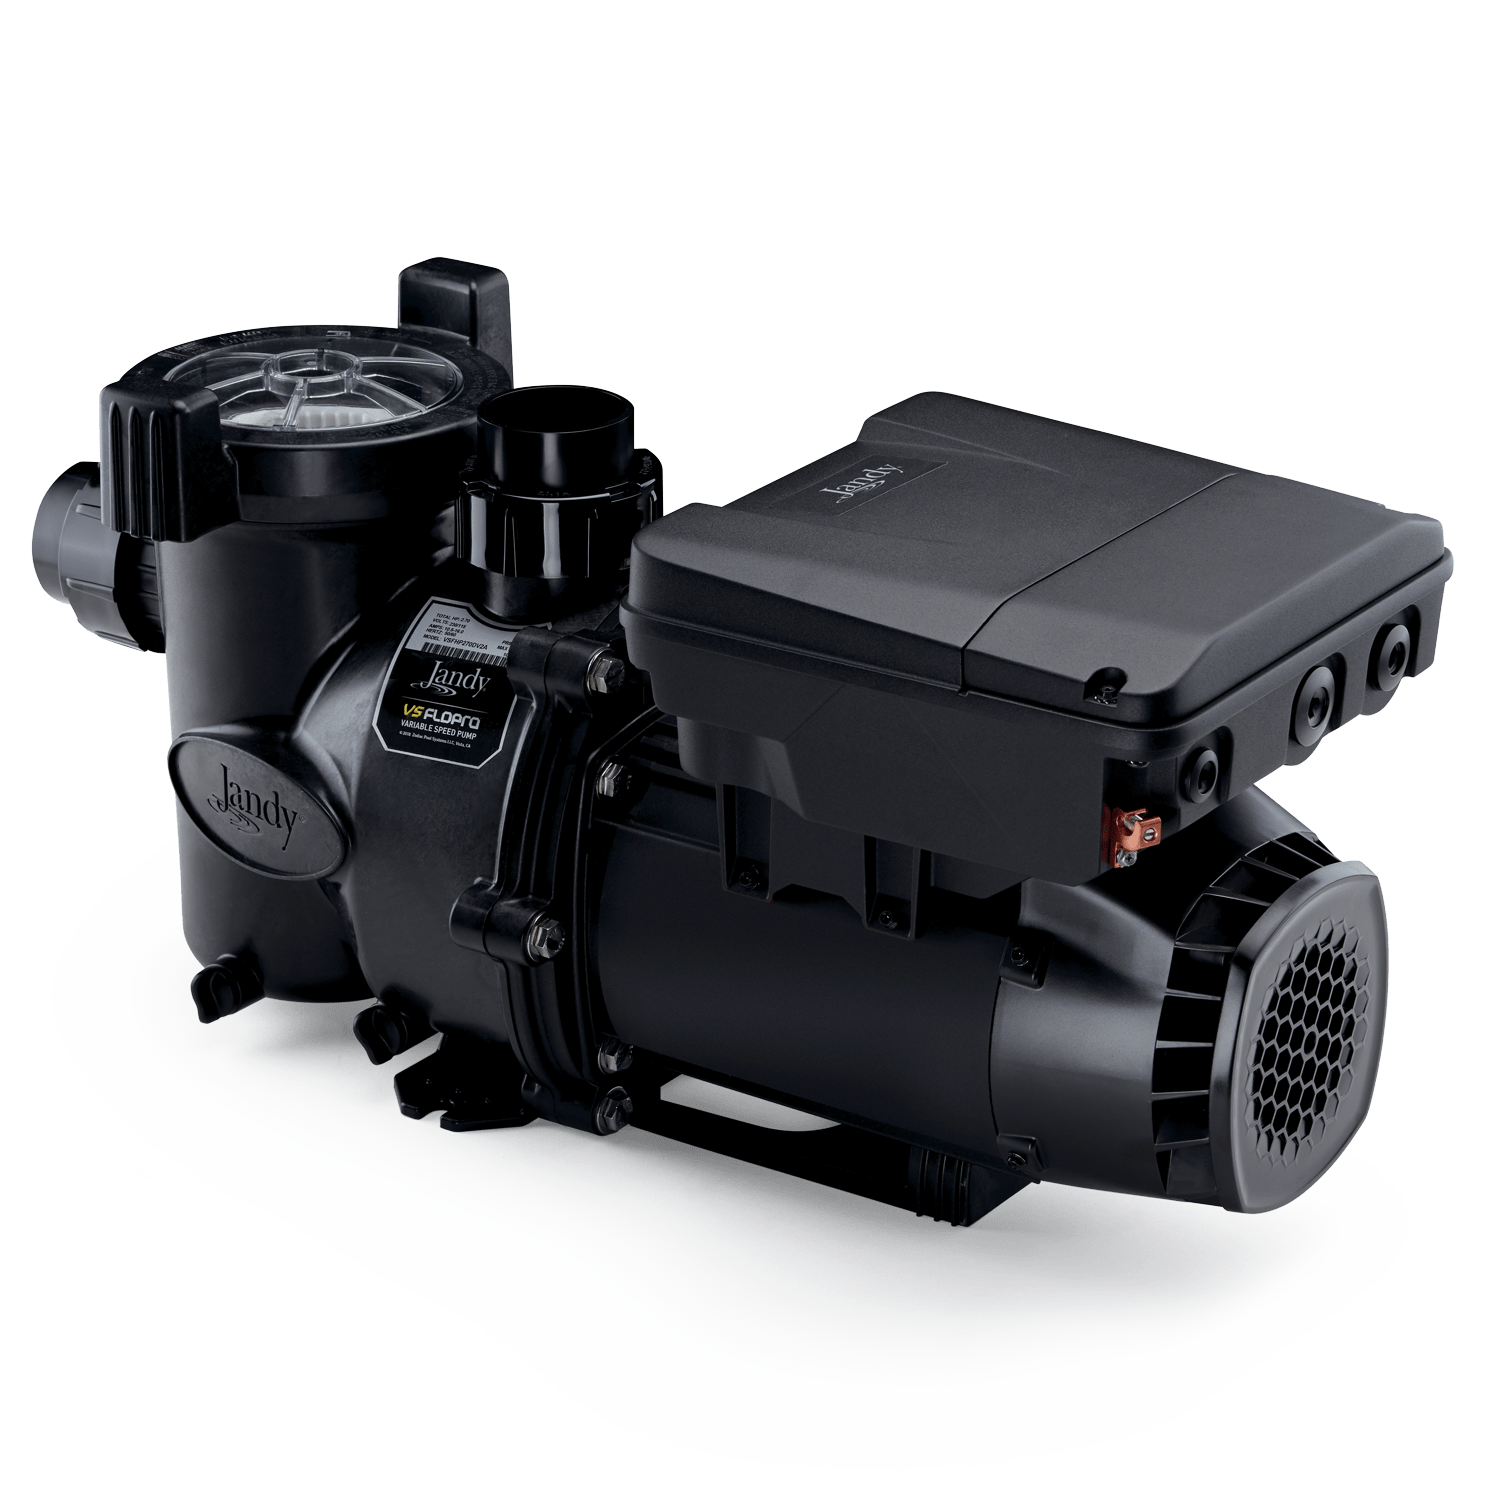 Jandy VS FloPro 1.85 HP Pump side view